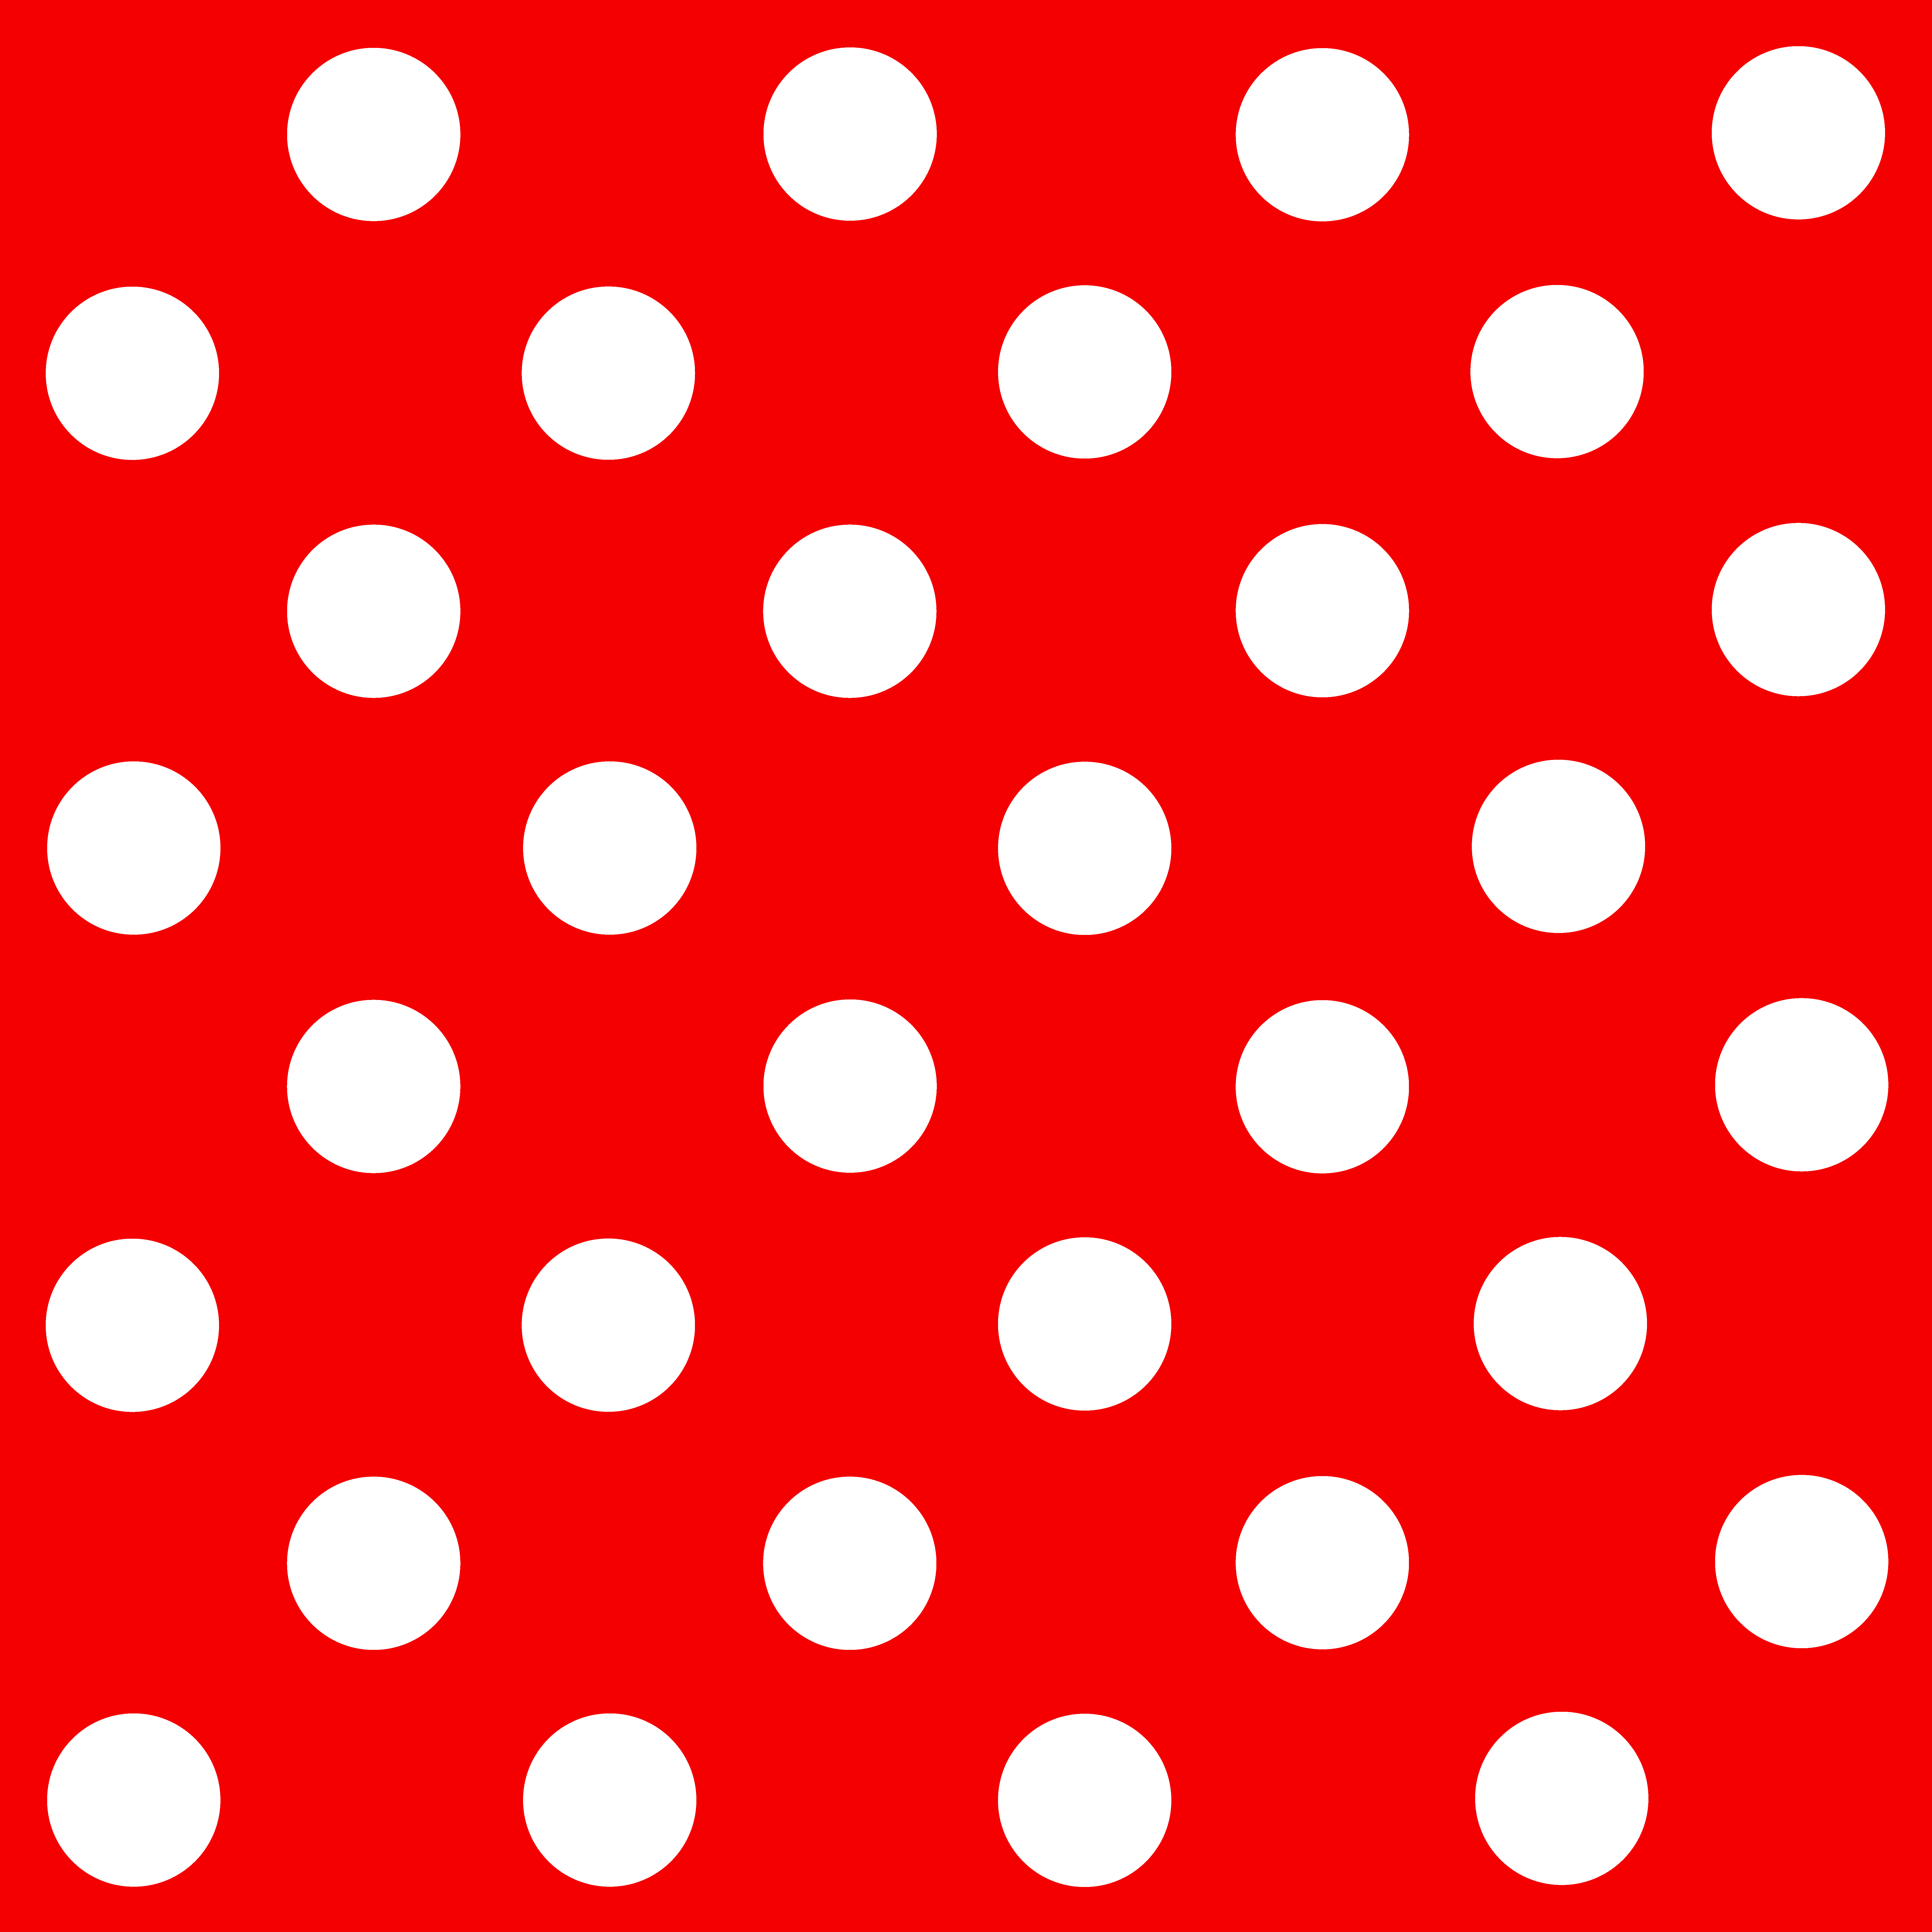 Clipart background red and green polka dot ClipartFest